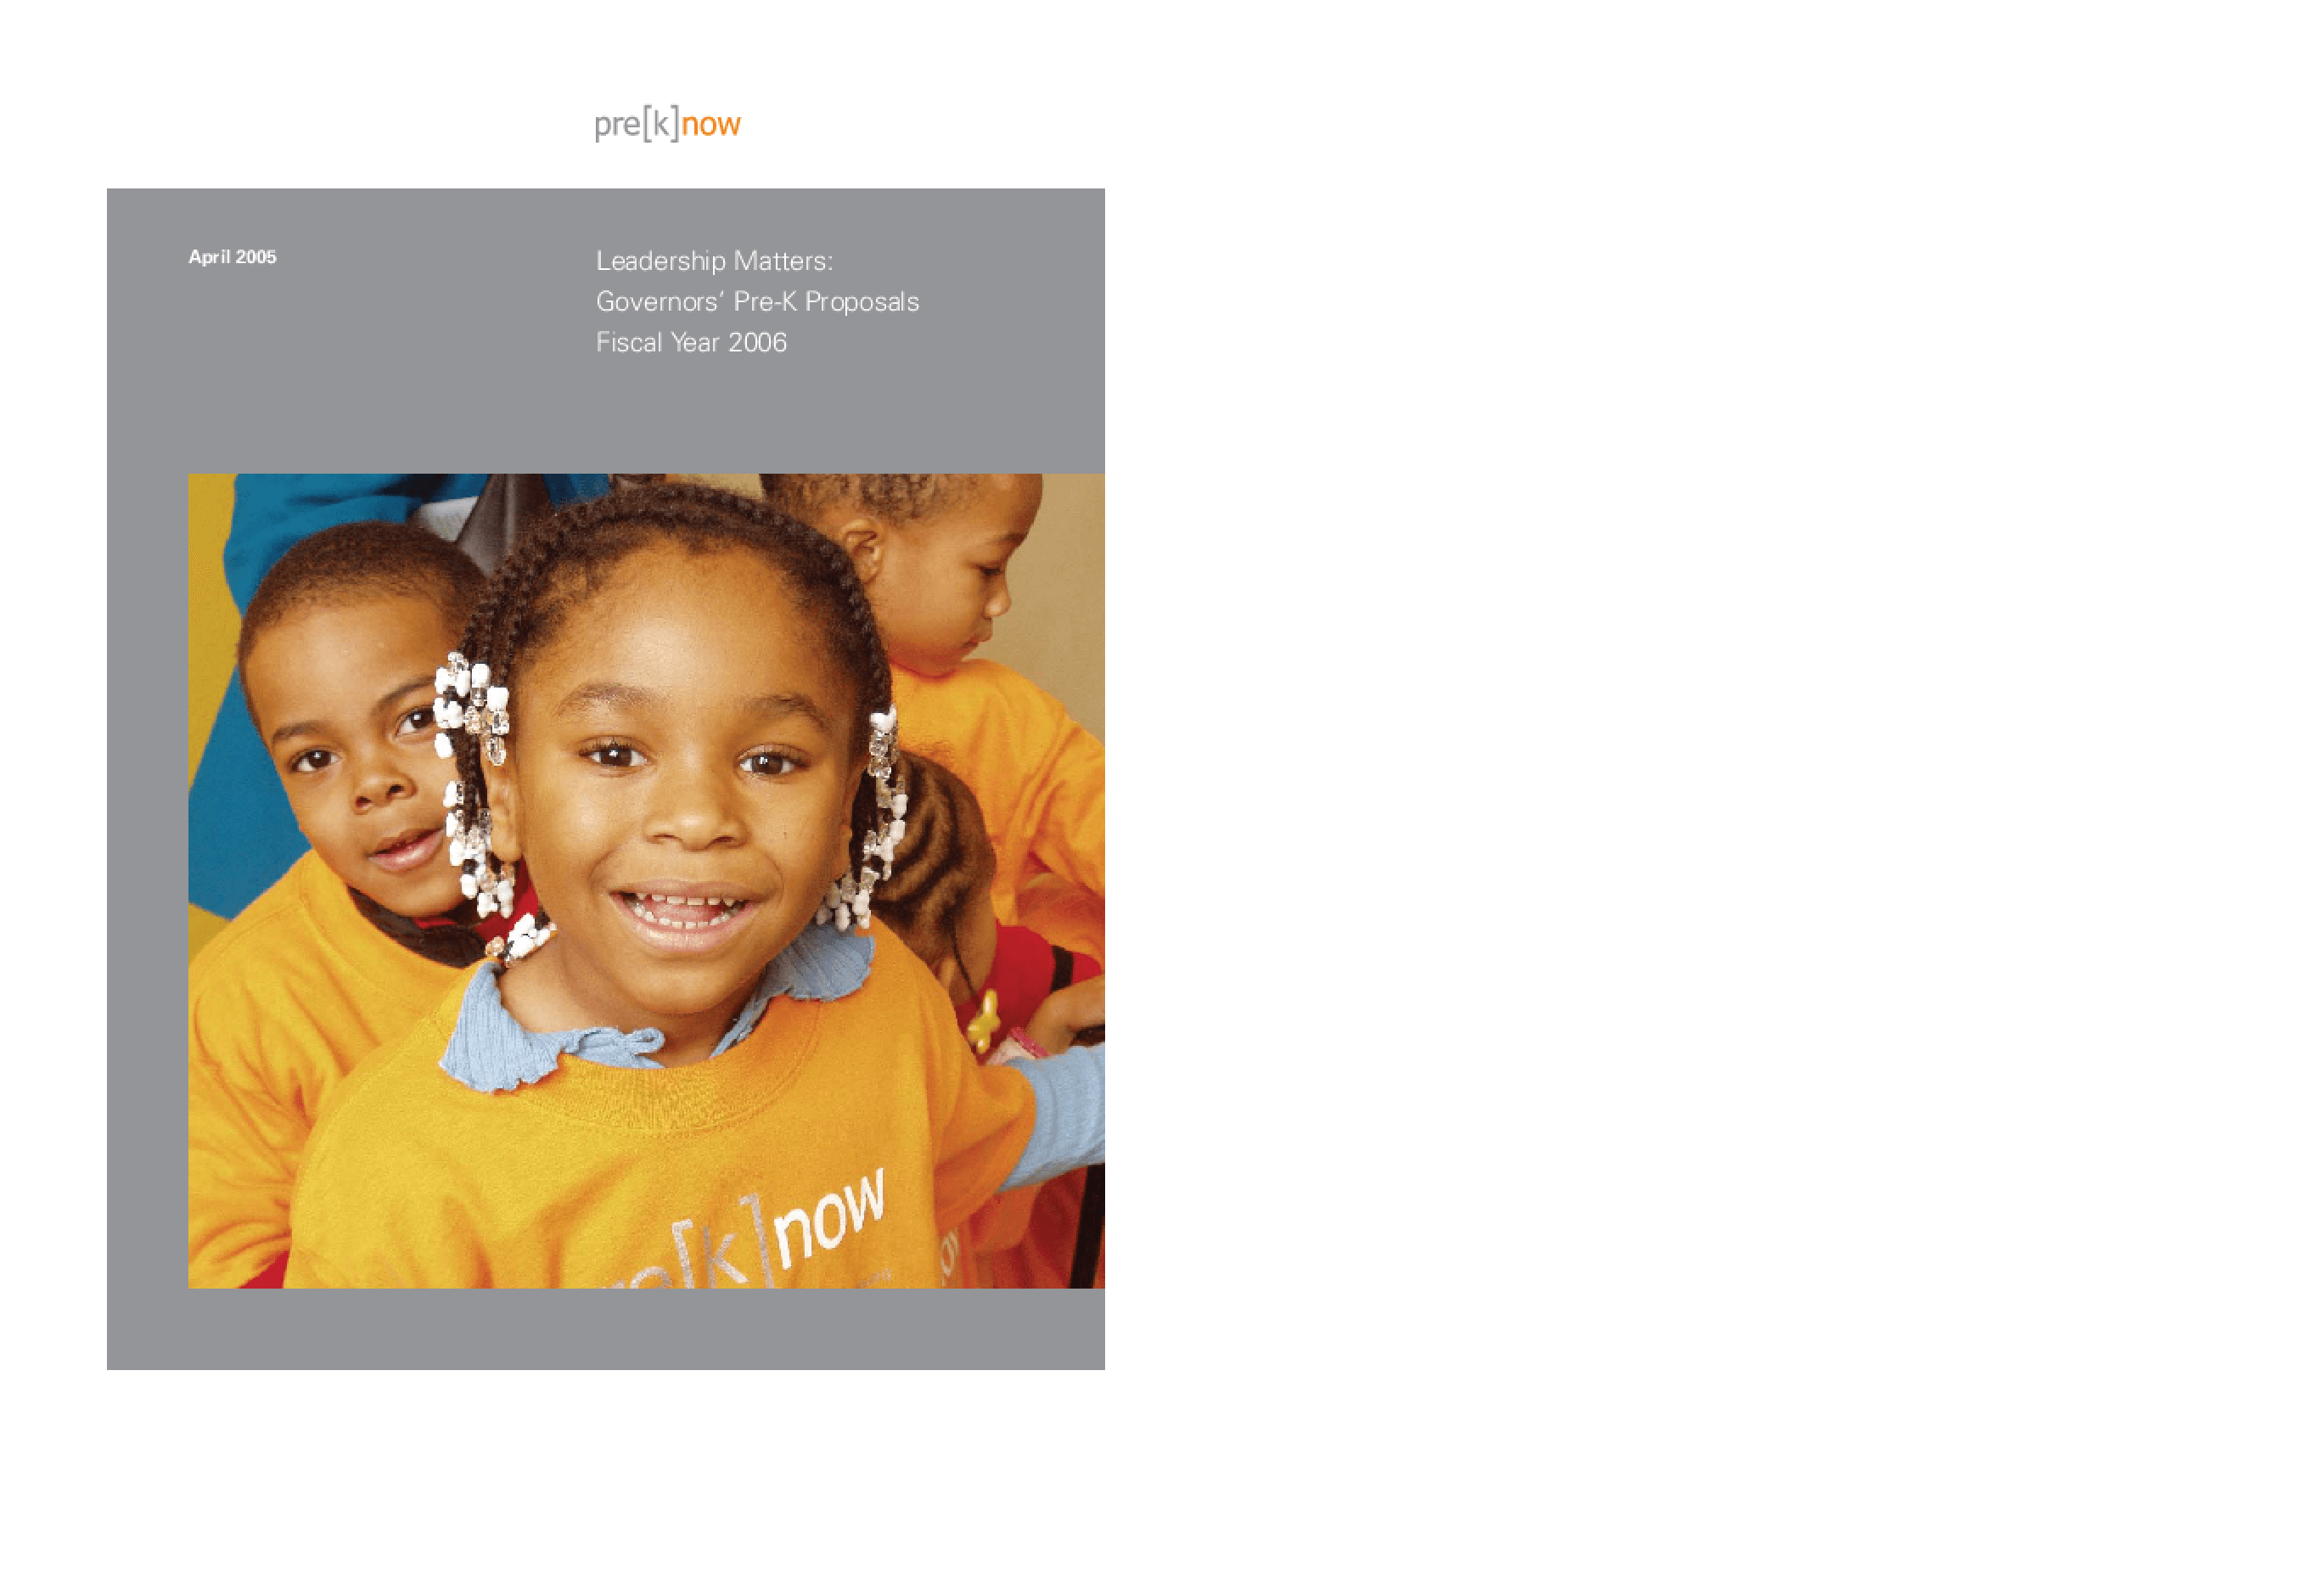 Leadership Matters: Governors' Pre-K Proposals Fiscal Year 2006